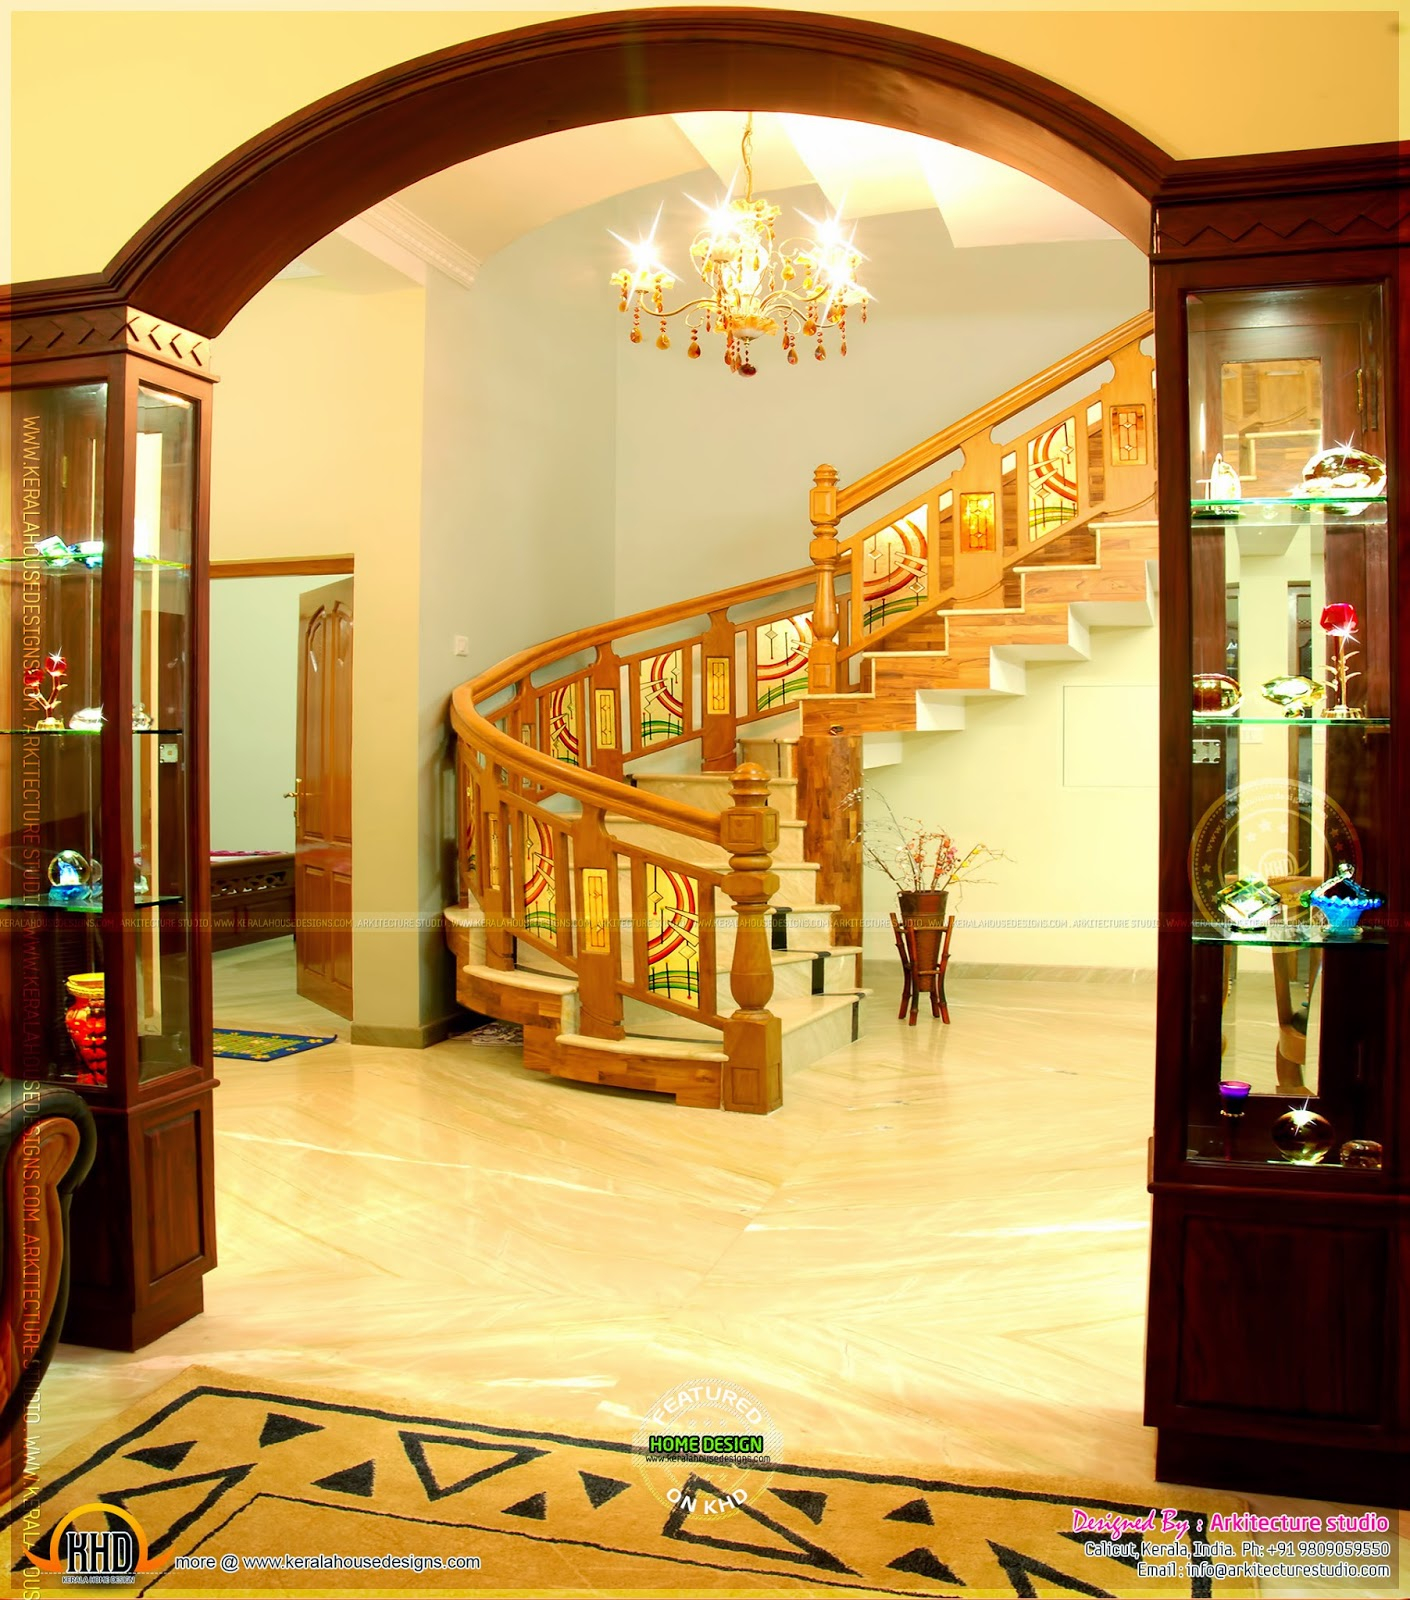 Real house in kerala with interior photos kerala home for Kerala home interior